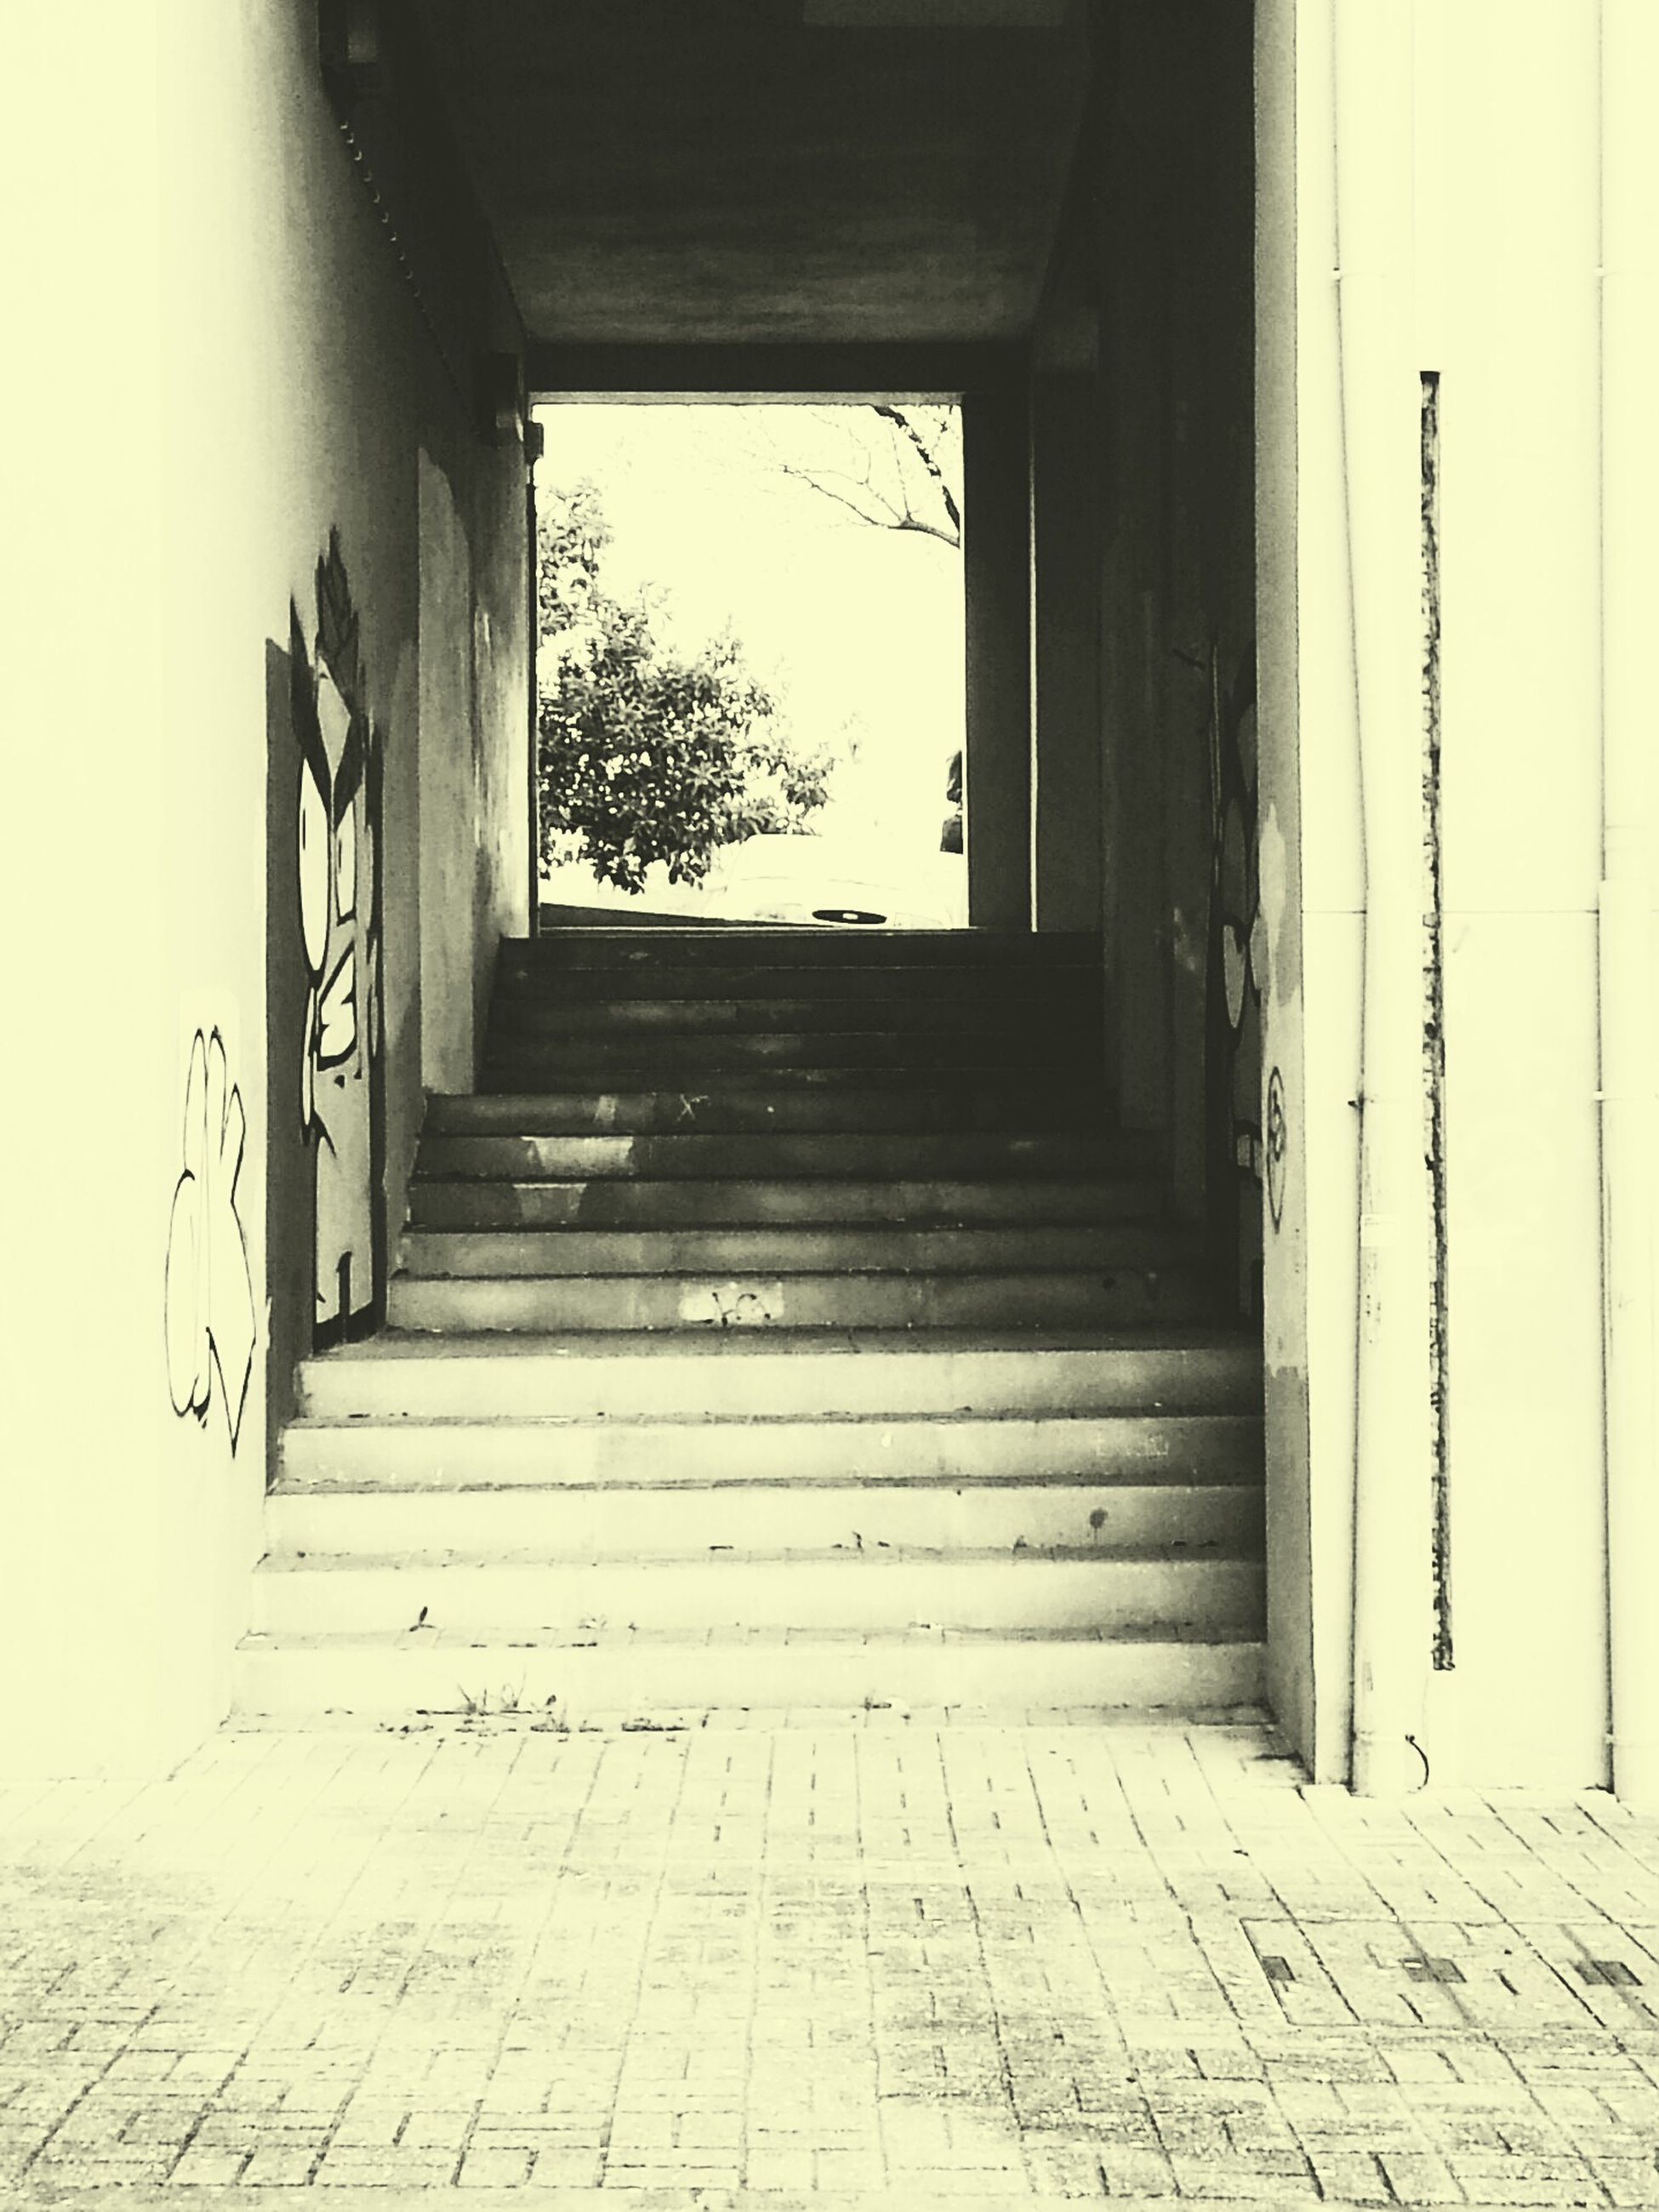 indoors, architecture, built structure, door, window, entrance, house, steps, closed, doorway, abandoned, the way forward, wall - building feature, sunlight, day, old, open, corridor, building, staircase